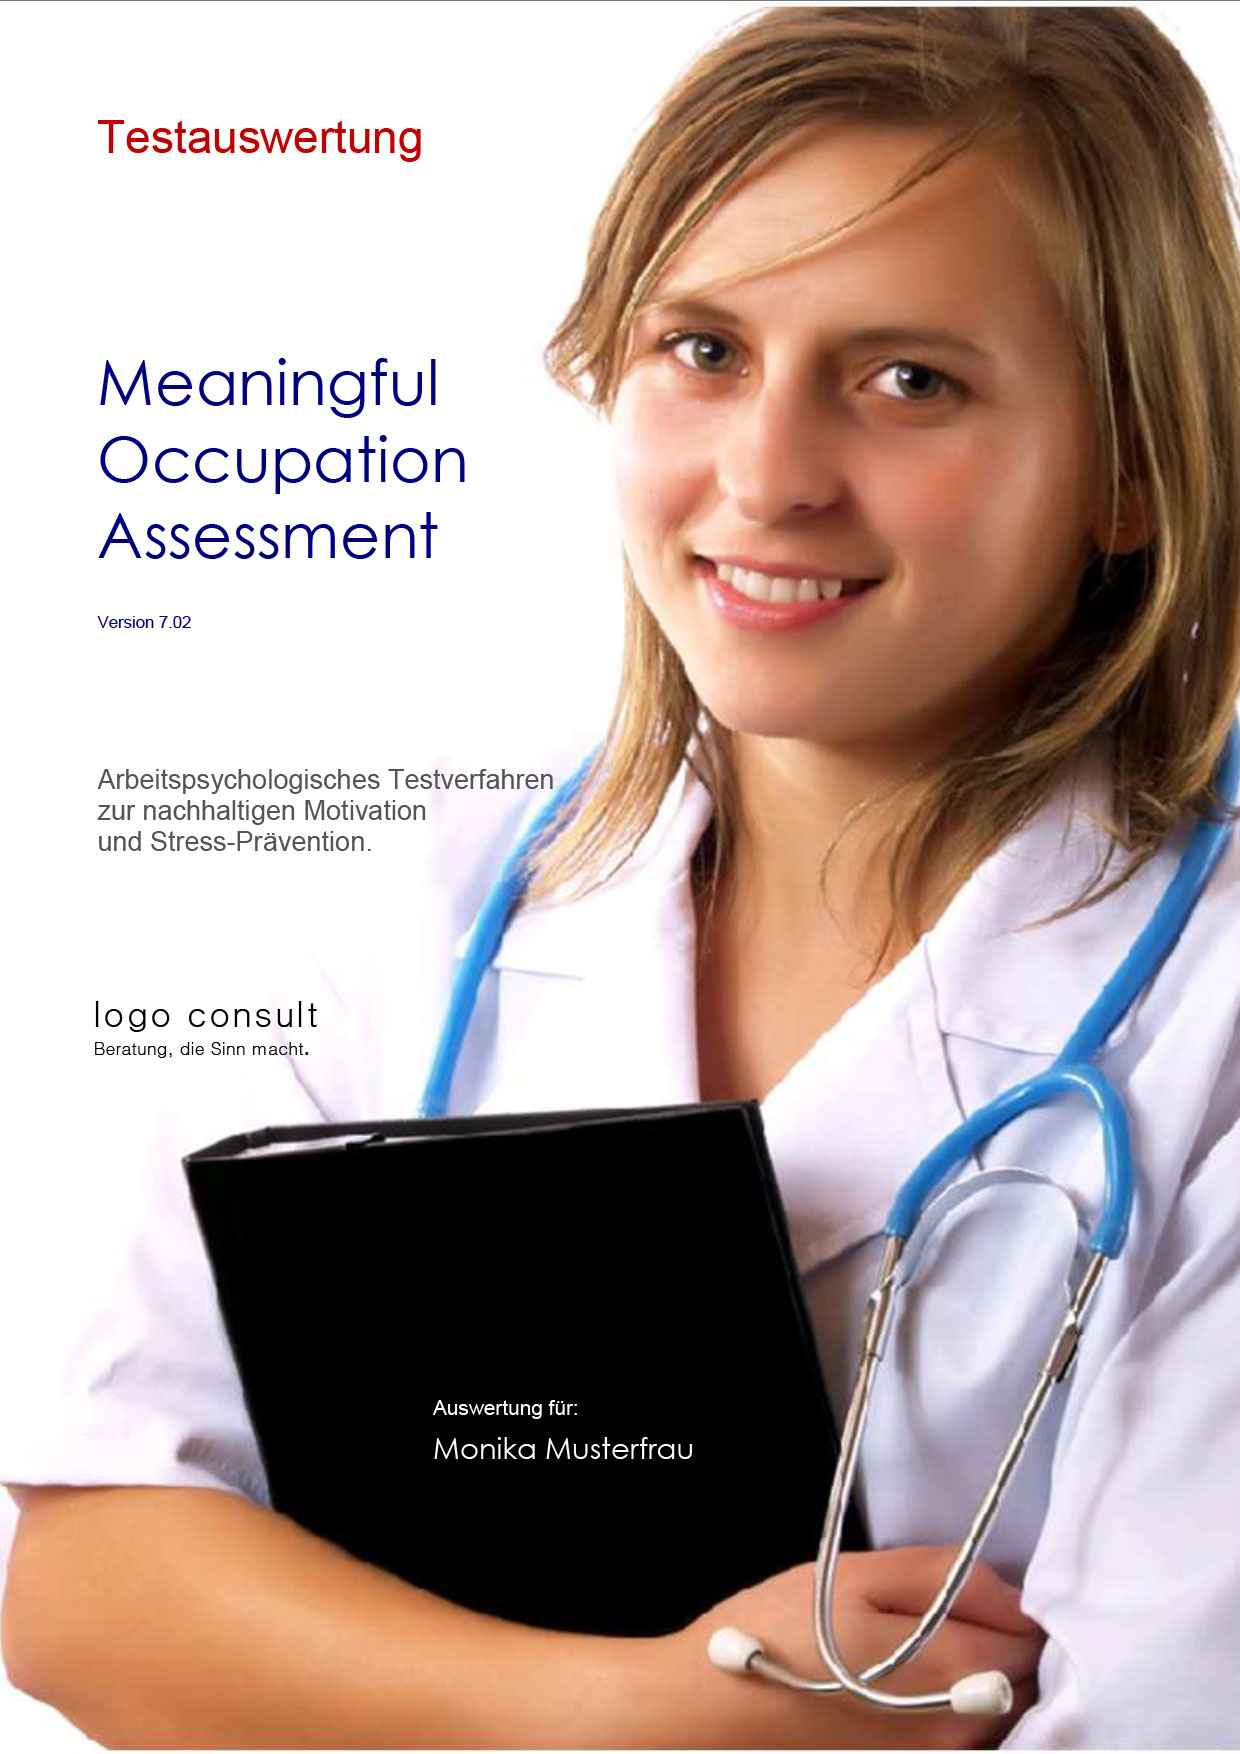 MOA 7.02 – Meaningful Occupation Assessment